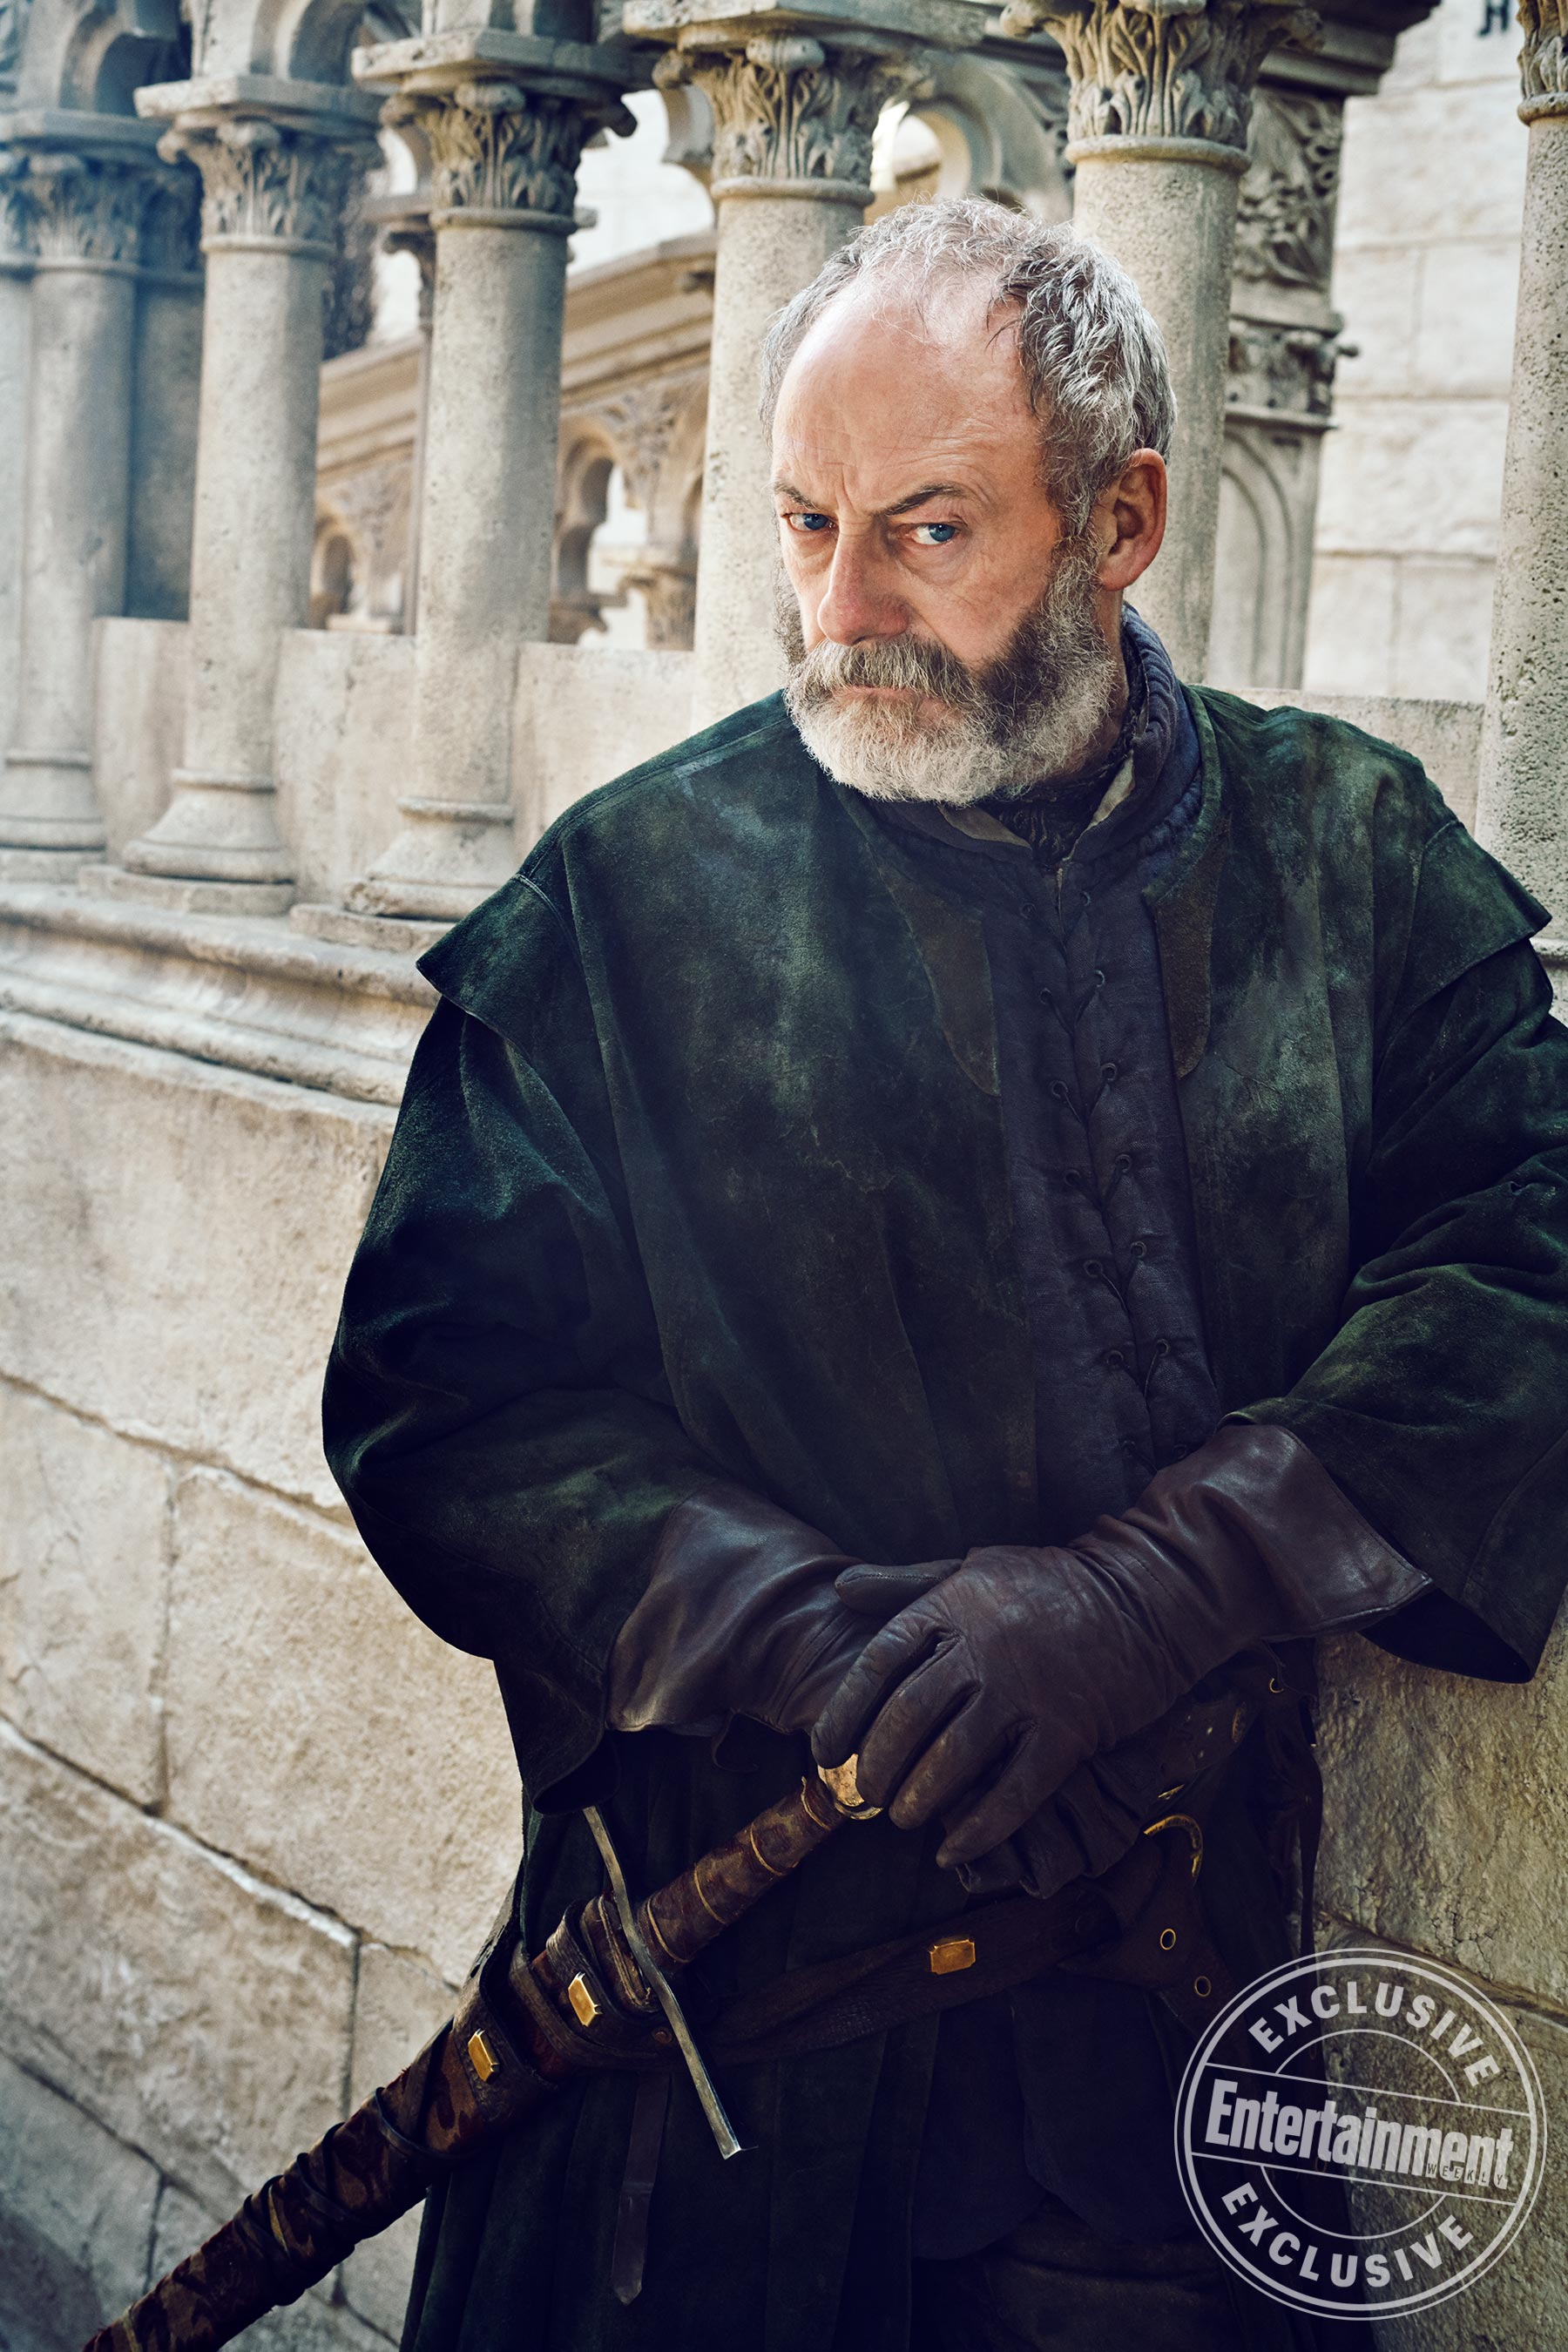 Entertainment Weekly Photoshoot - 2019 - Liam Cunningham as Davos Seaworth